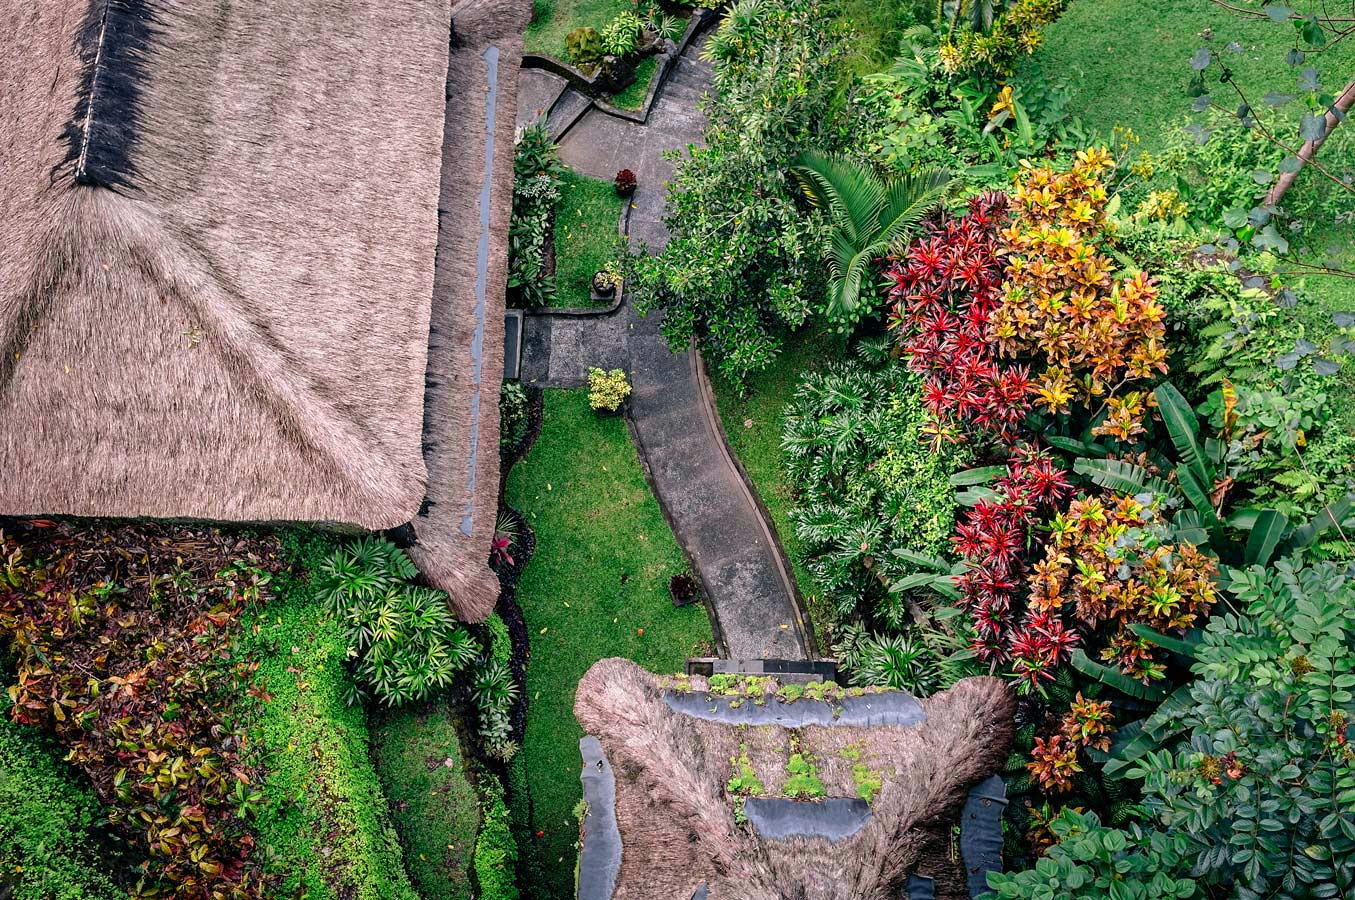 Bali travel photography by Sharon Blance, Melbourne photographer